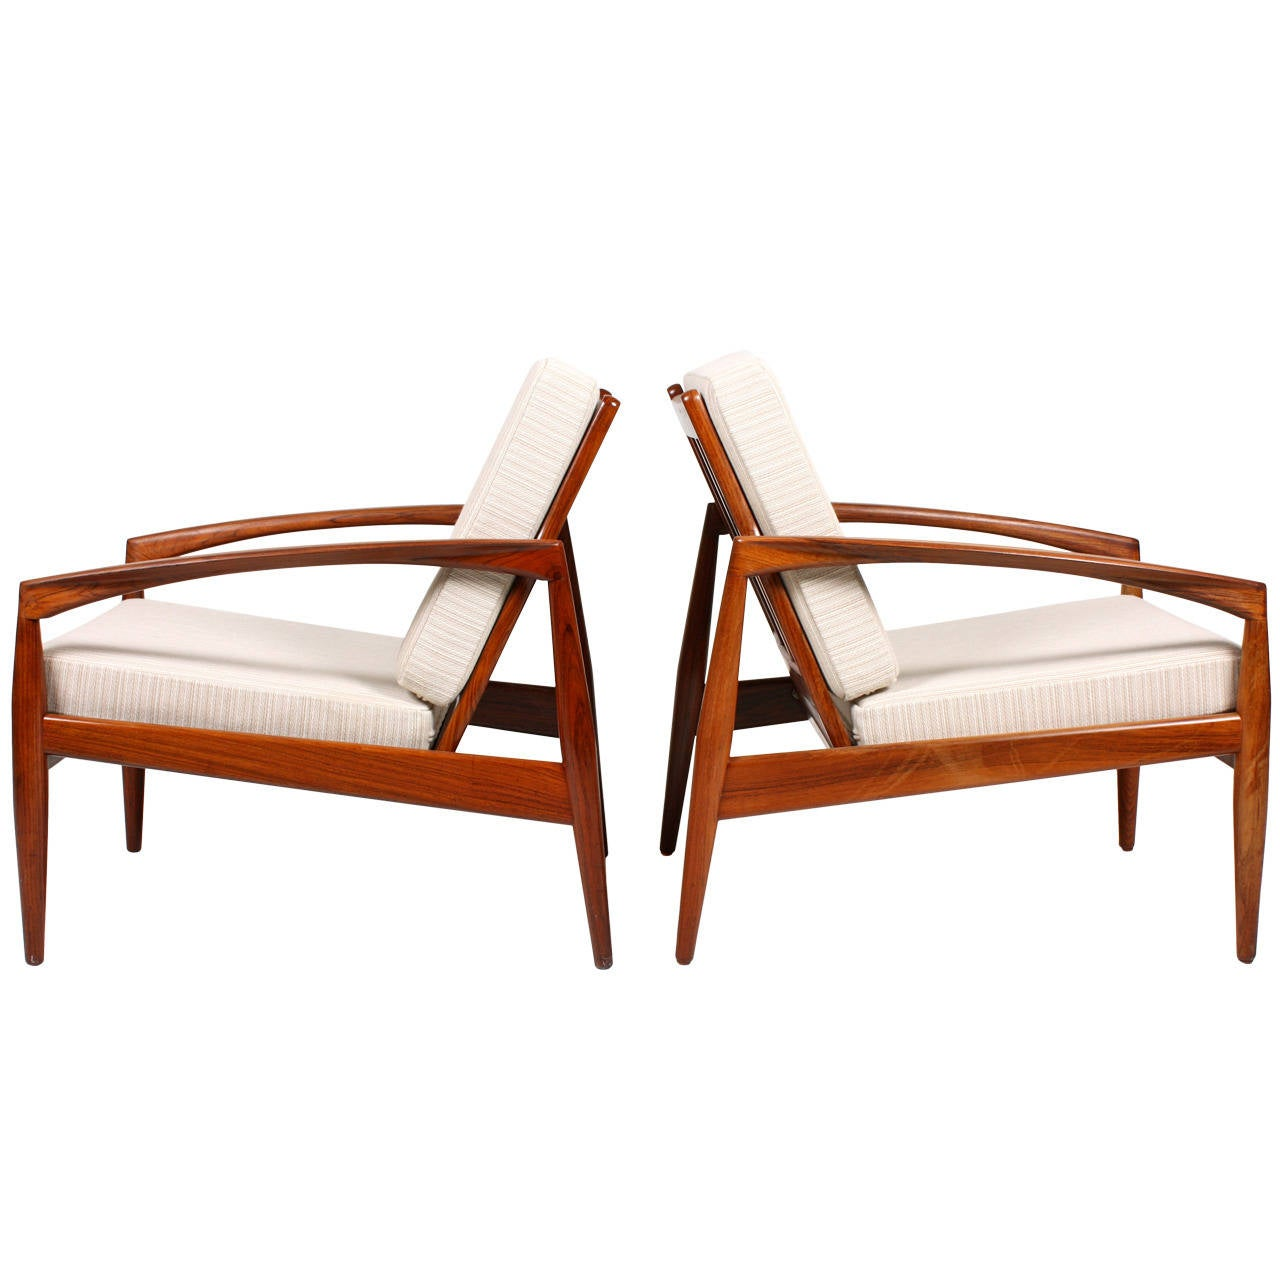 Pair of easy chairs by kai kristiansen at 1stdibs - Kai kristiansen chairs ...